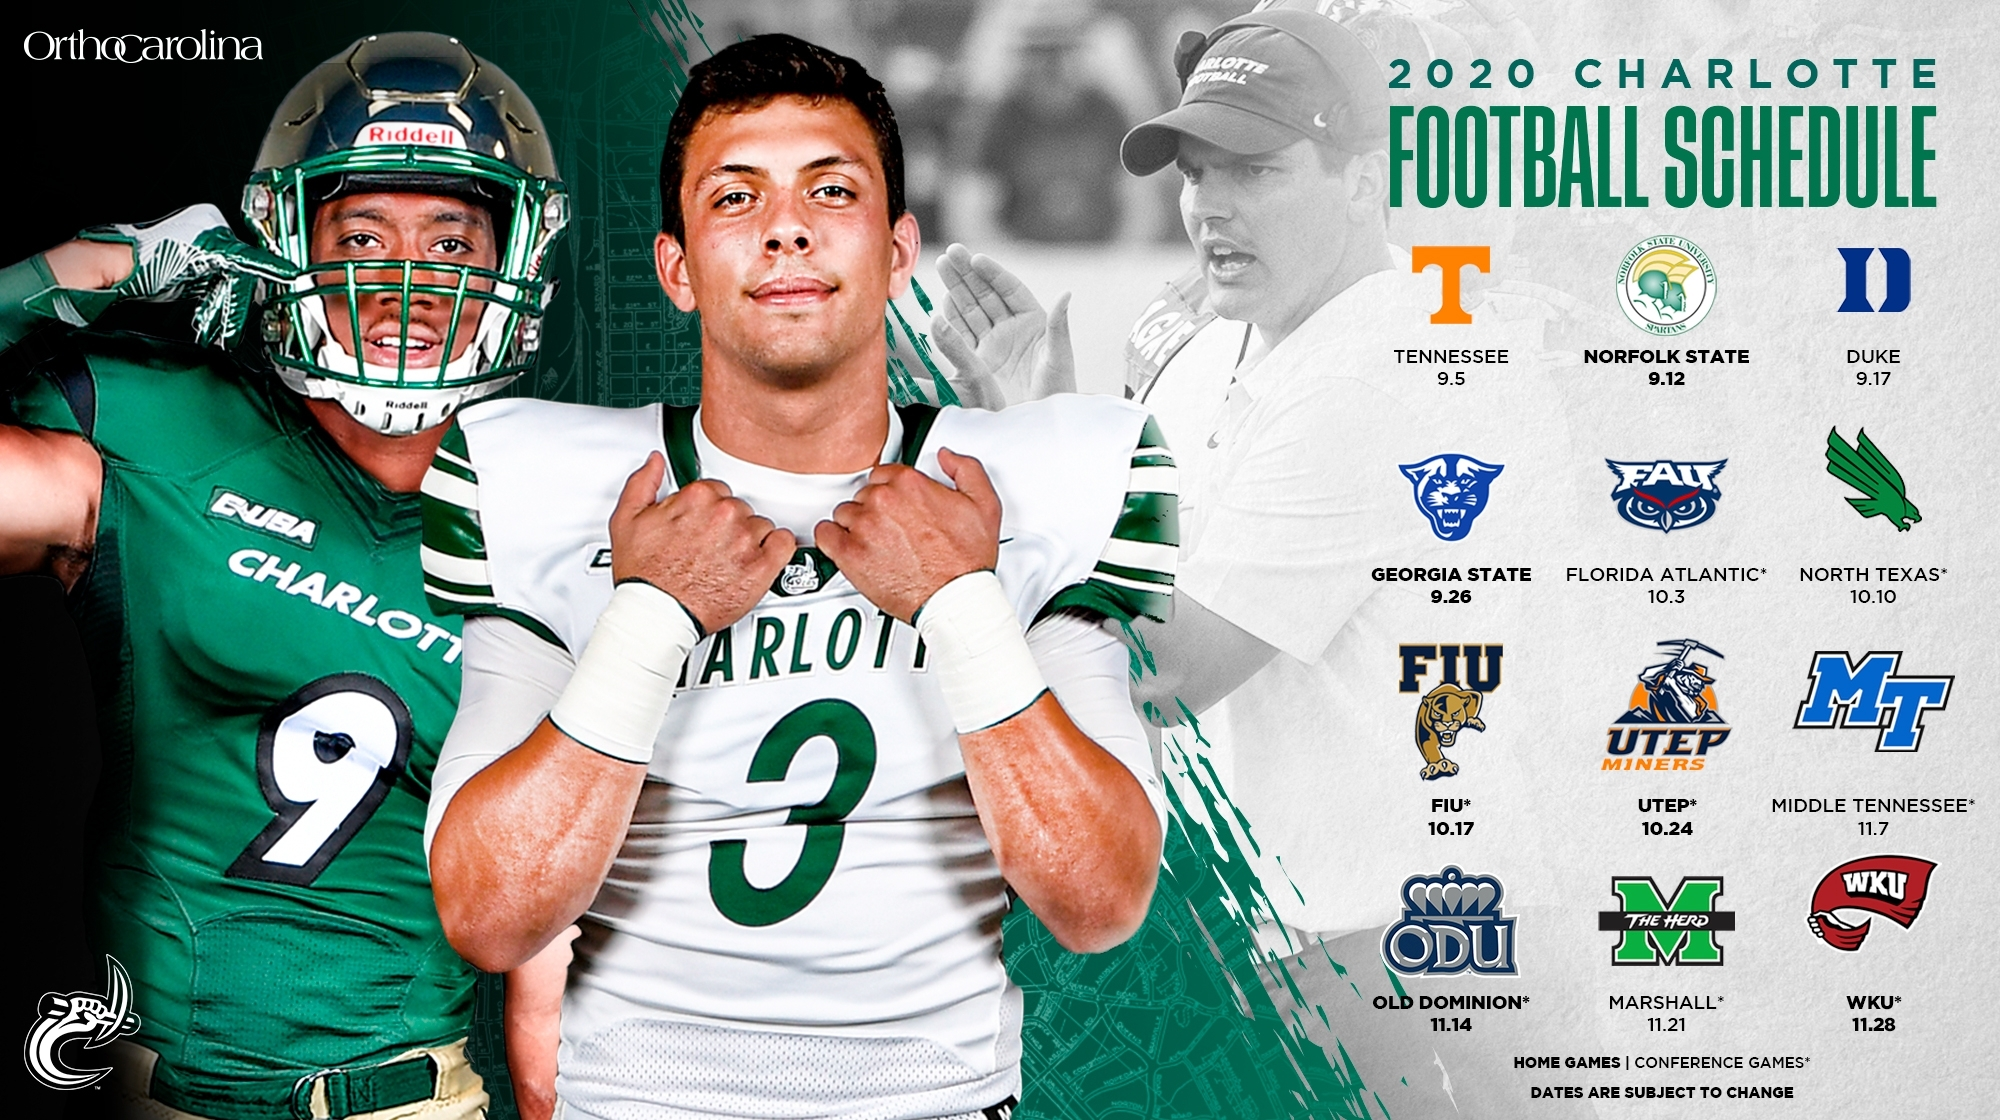 Healy Announces 2020 Football Schedule - Charlotte Athletics